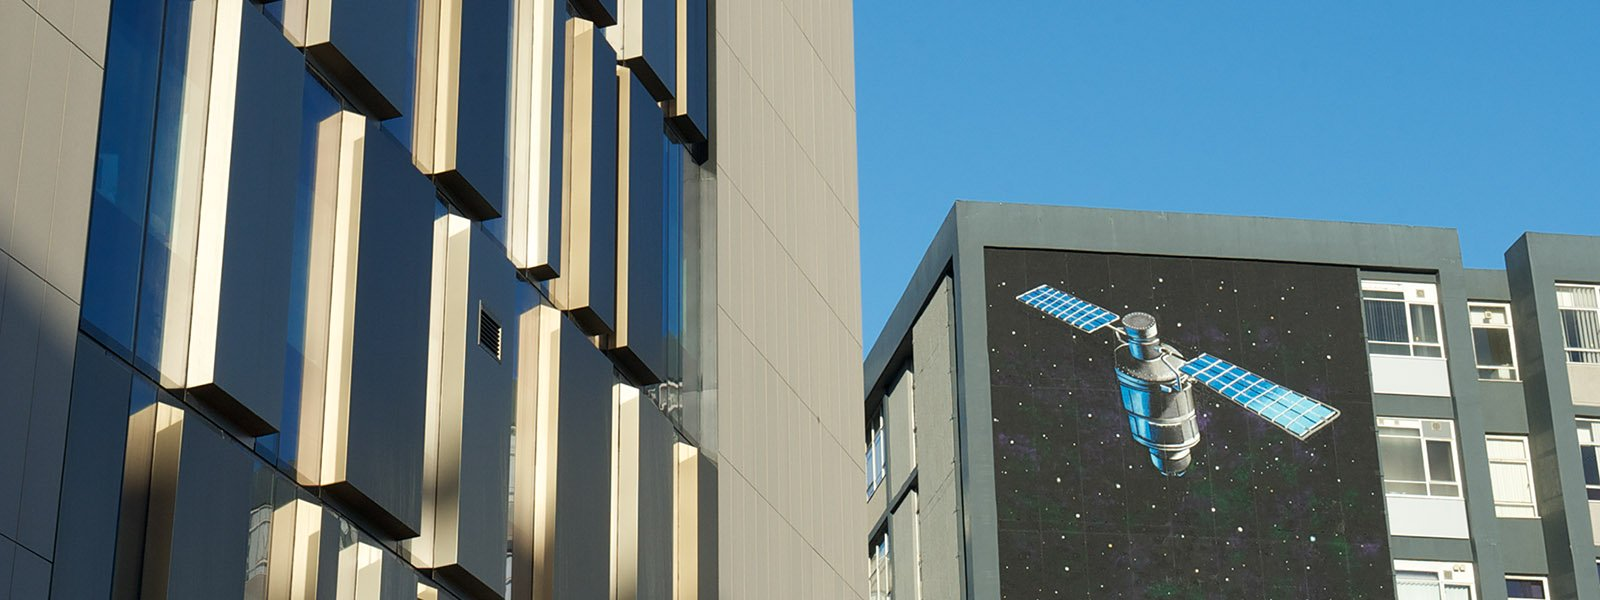 The Technology and Innovation Centre alongside Graham Hills Building with space mural1600x600